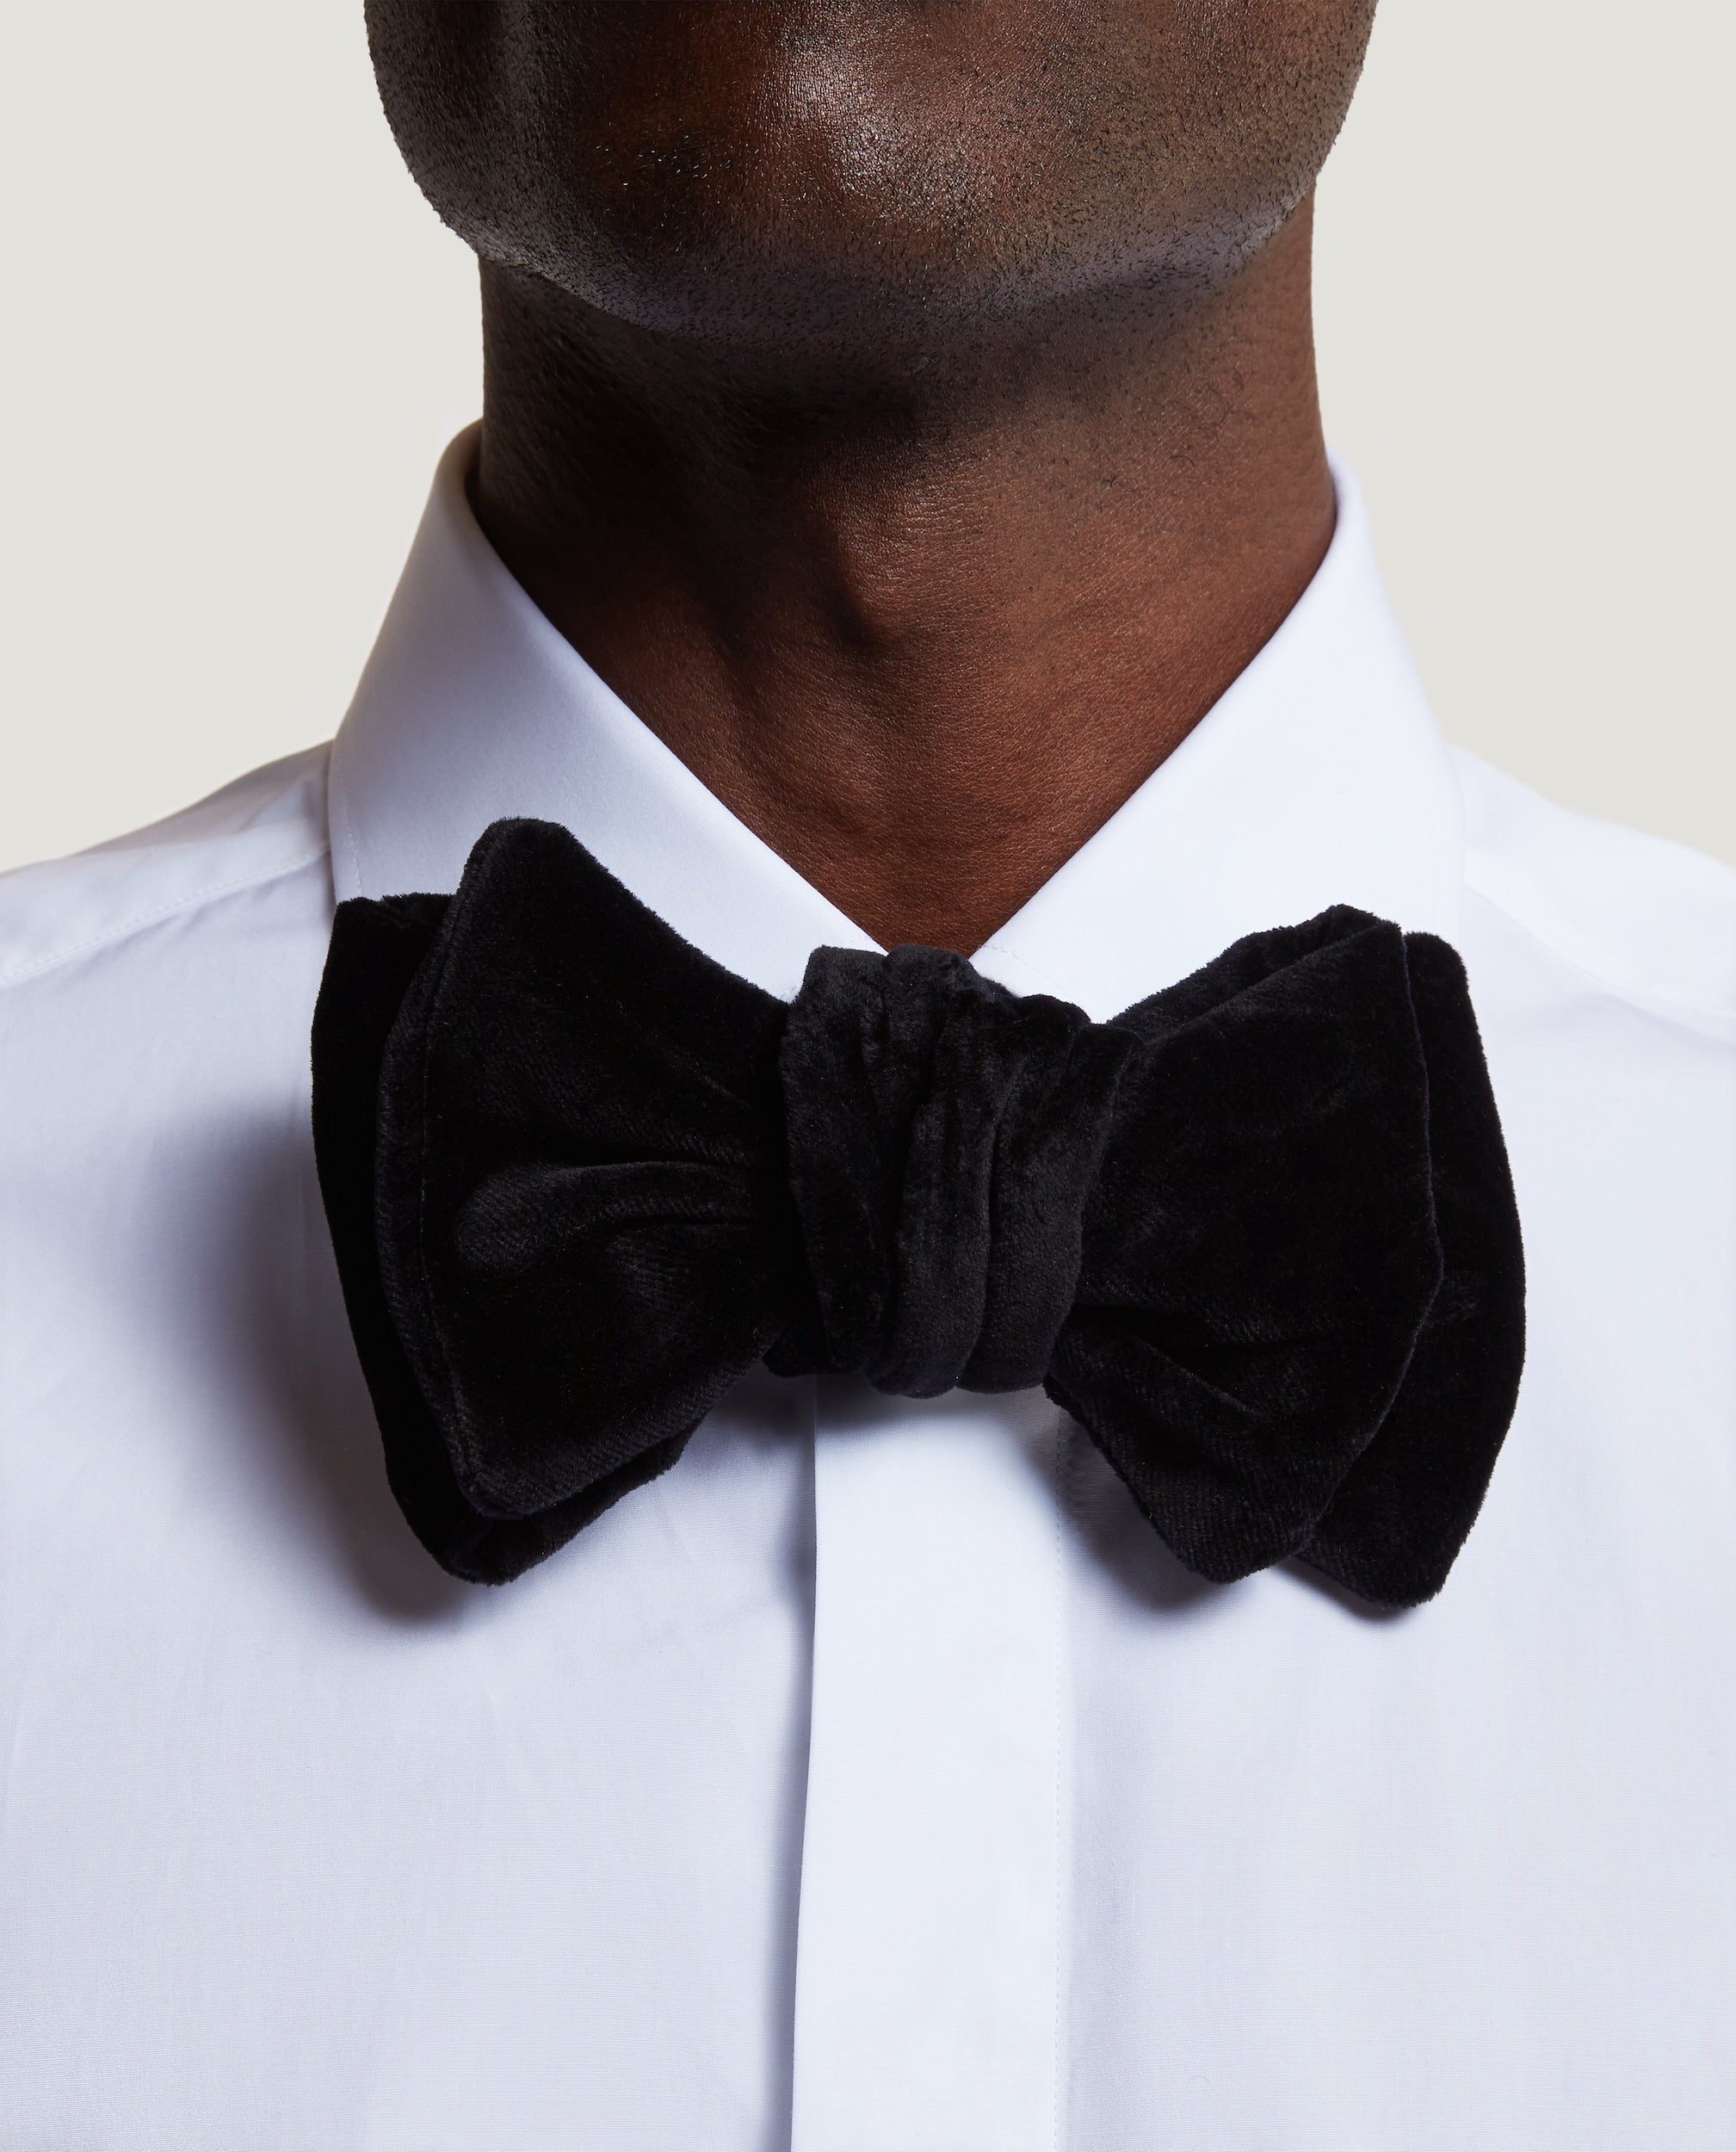 ALEX Velvet bow tie | MR PORTER EXCLUSIVE